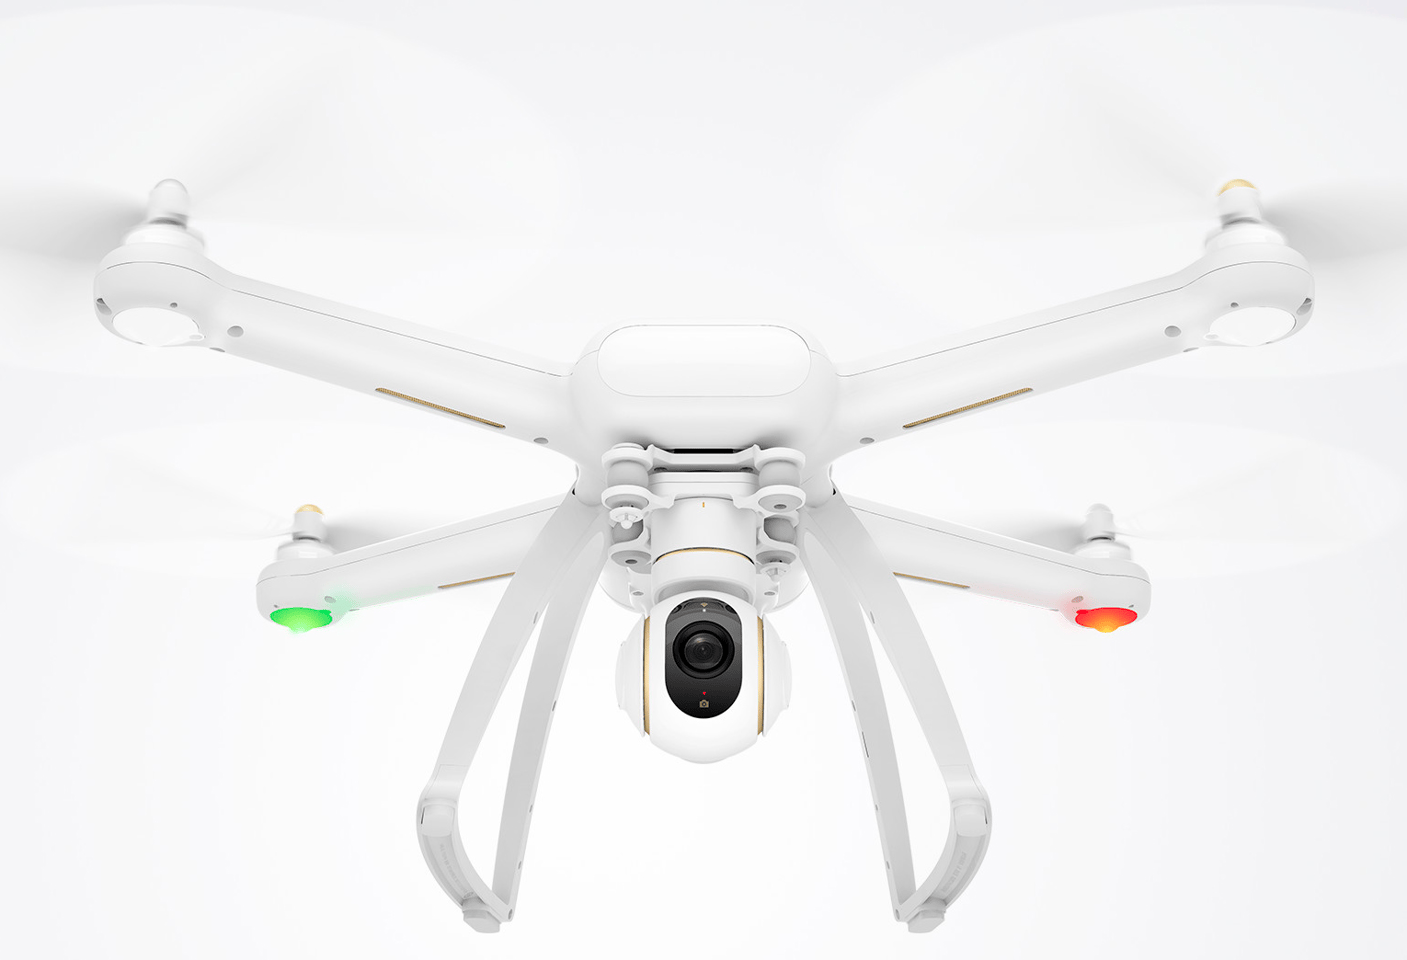 Xiaomi's drone is simply dubbed Mi, in keeping with its category of consumer products by the same name